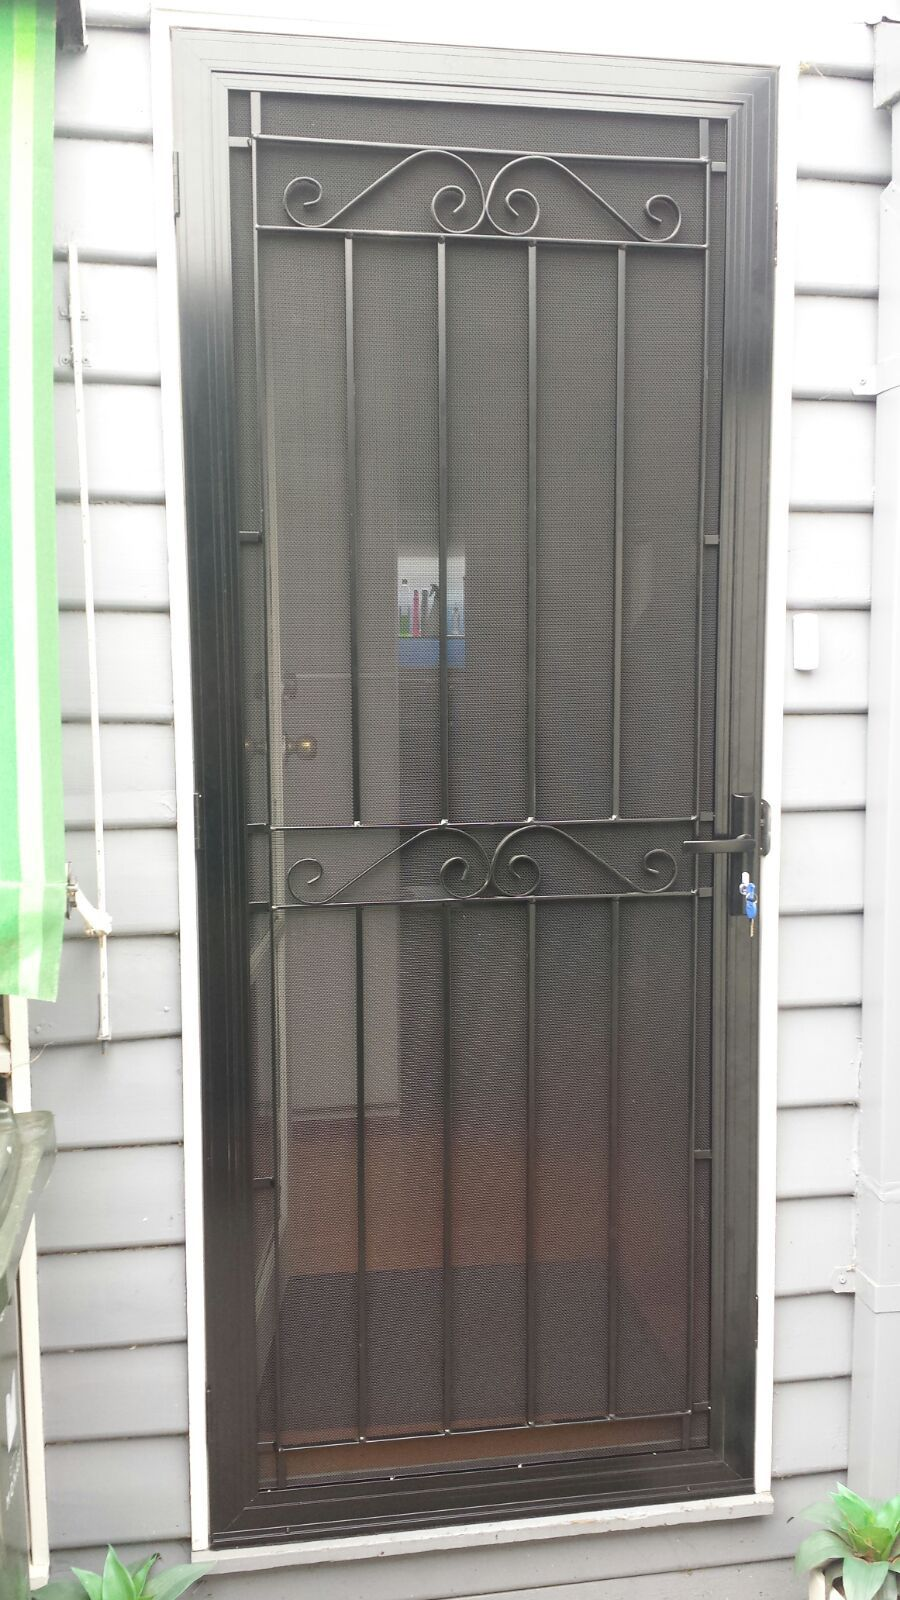 Aluminium Frame Security Door With Steel Grille And Stainless Steel Mesh Installed In Mordialloc Metal Screen Doors Iron Door Design Steel Security Doors